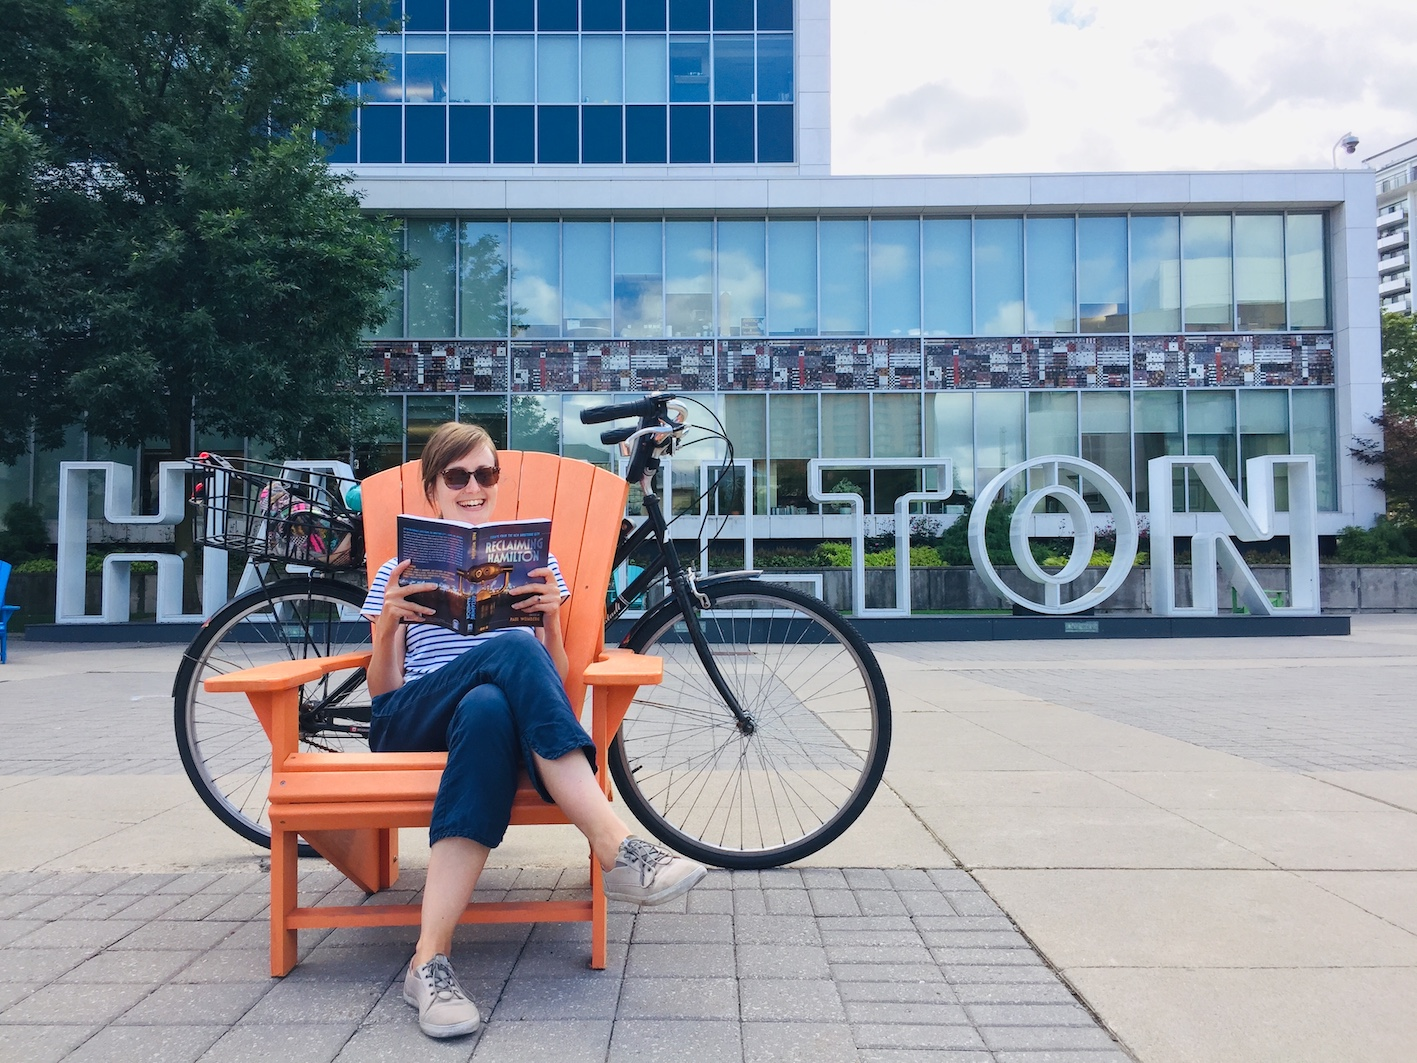 Jamie sitting in a Muskoka chair reading the Reclaiming Hamilton book. Her bike and the Hamilton sign are behind her